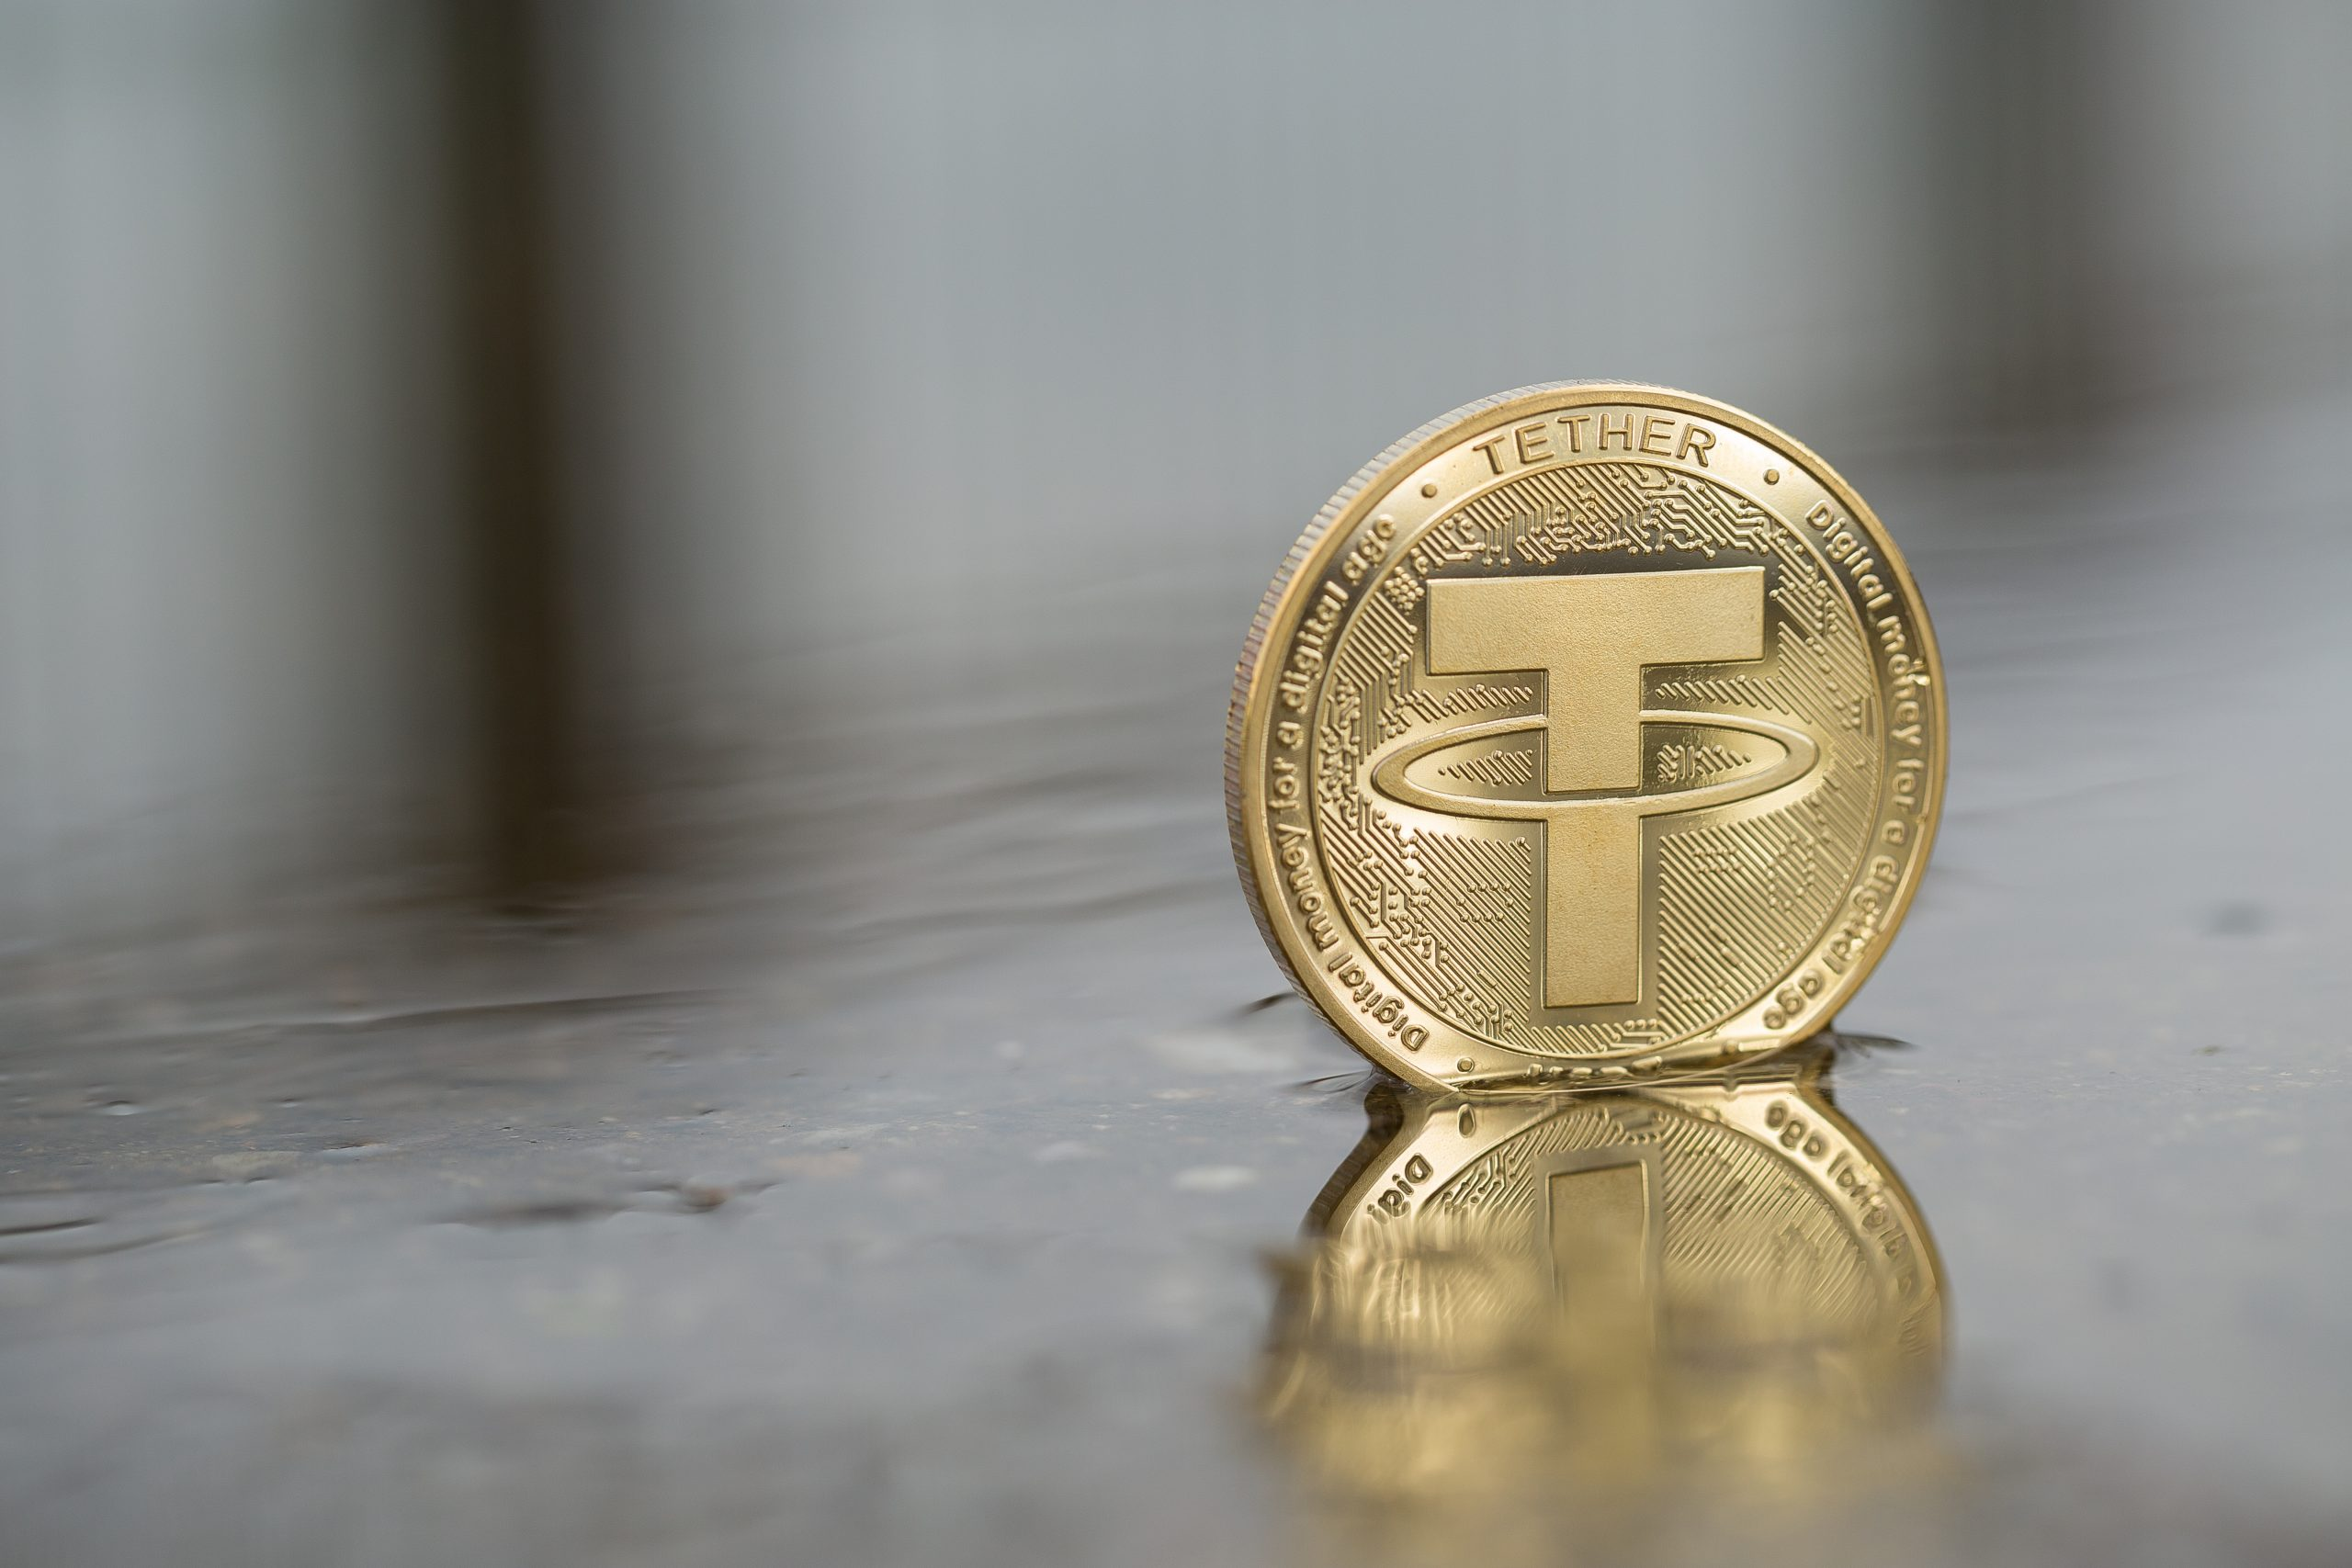 Is Tether Accurate a Scam to Enrich Bitcoin Investors?